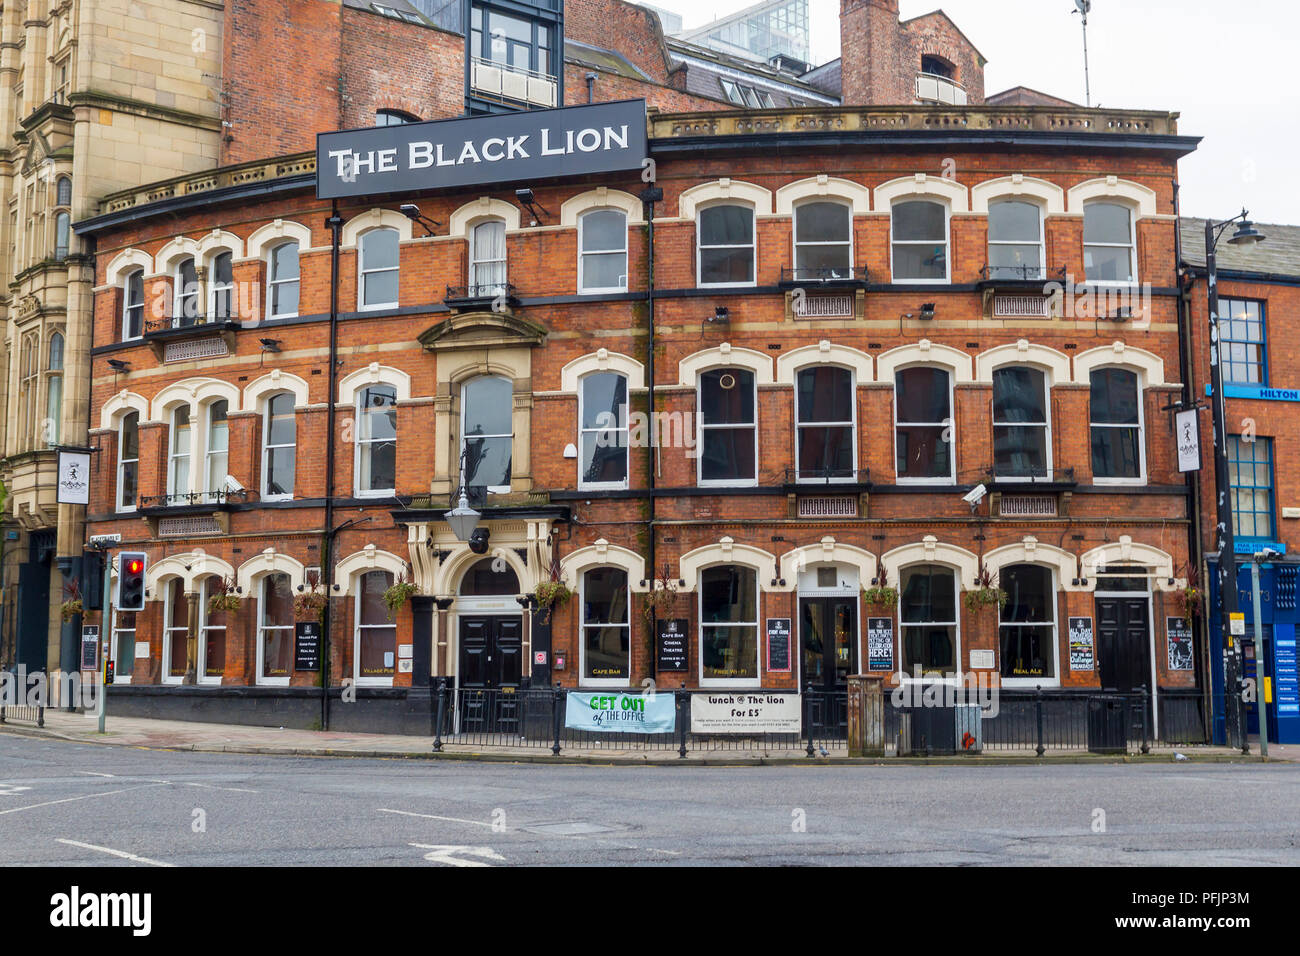 The Black Lion Pub in Manchester - Stock Image